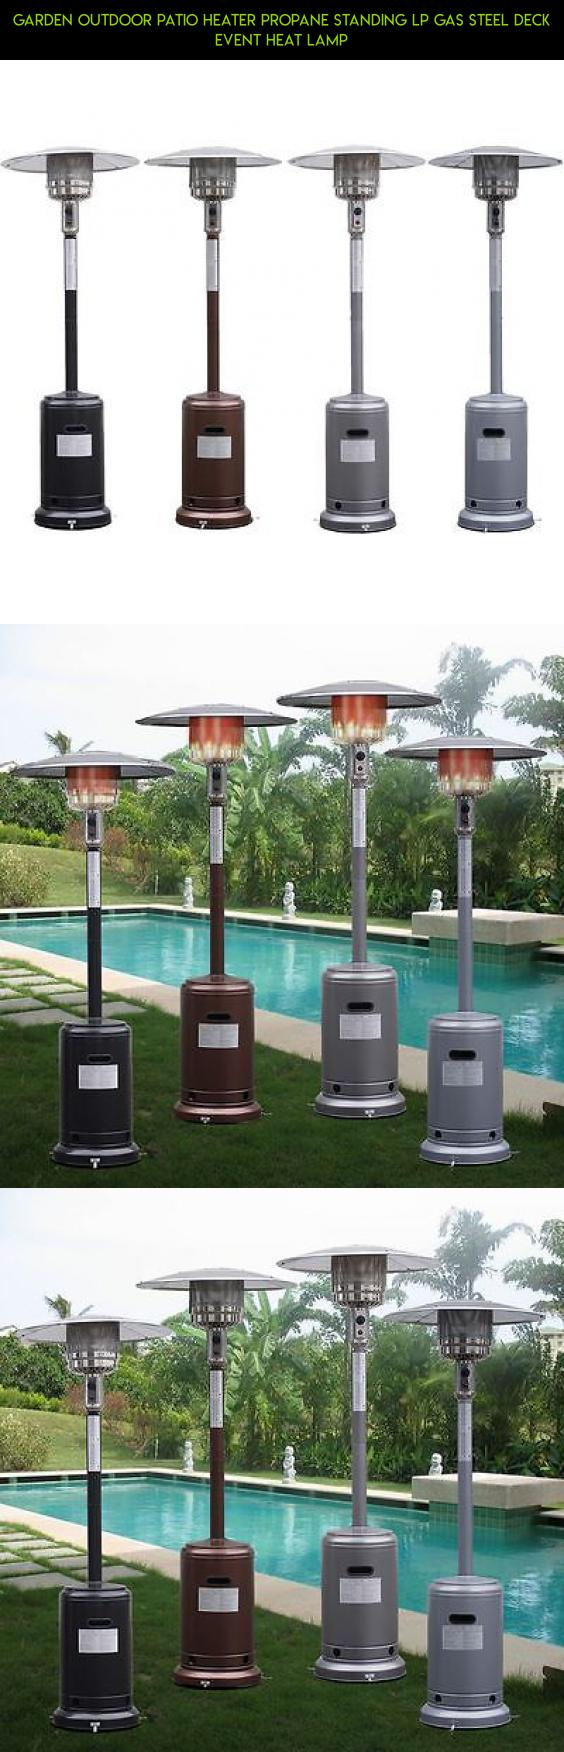 Garden Outdoor Patio Heater Propane Standing LP Gas Steel Deck Event Heat  Lamp #products #